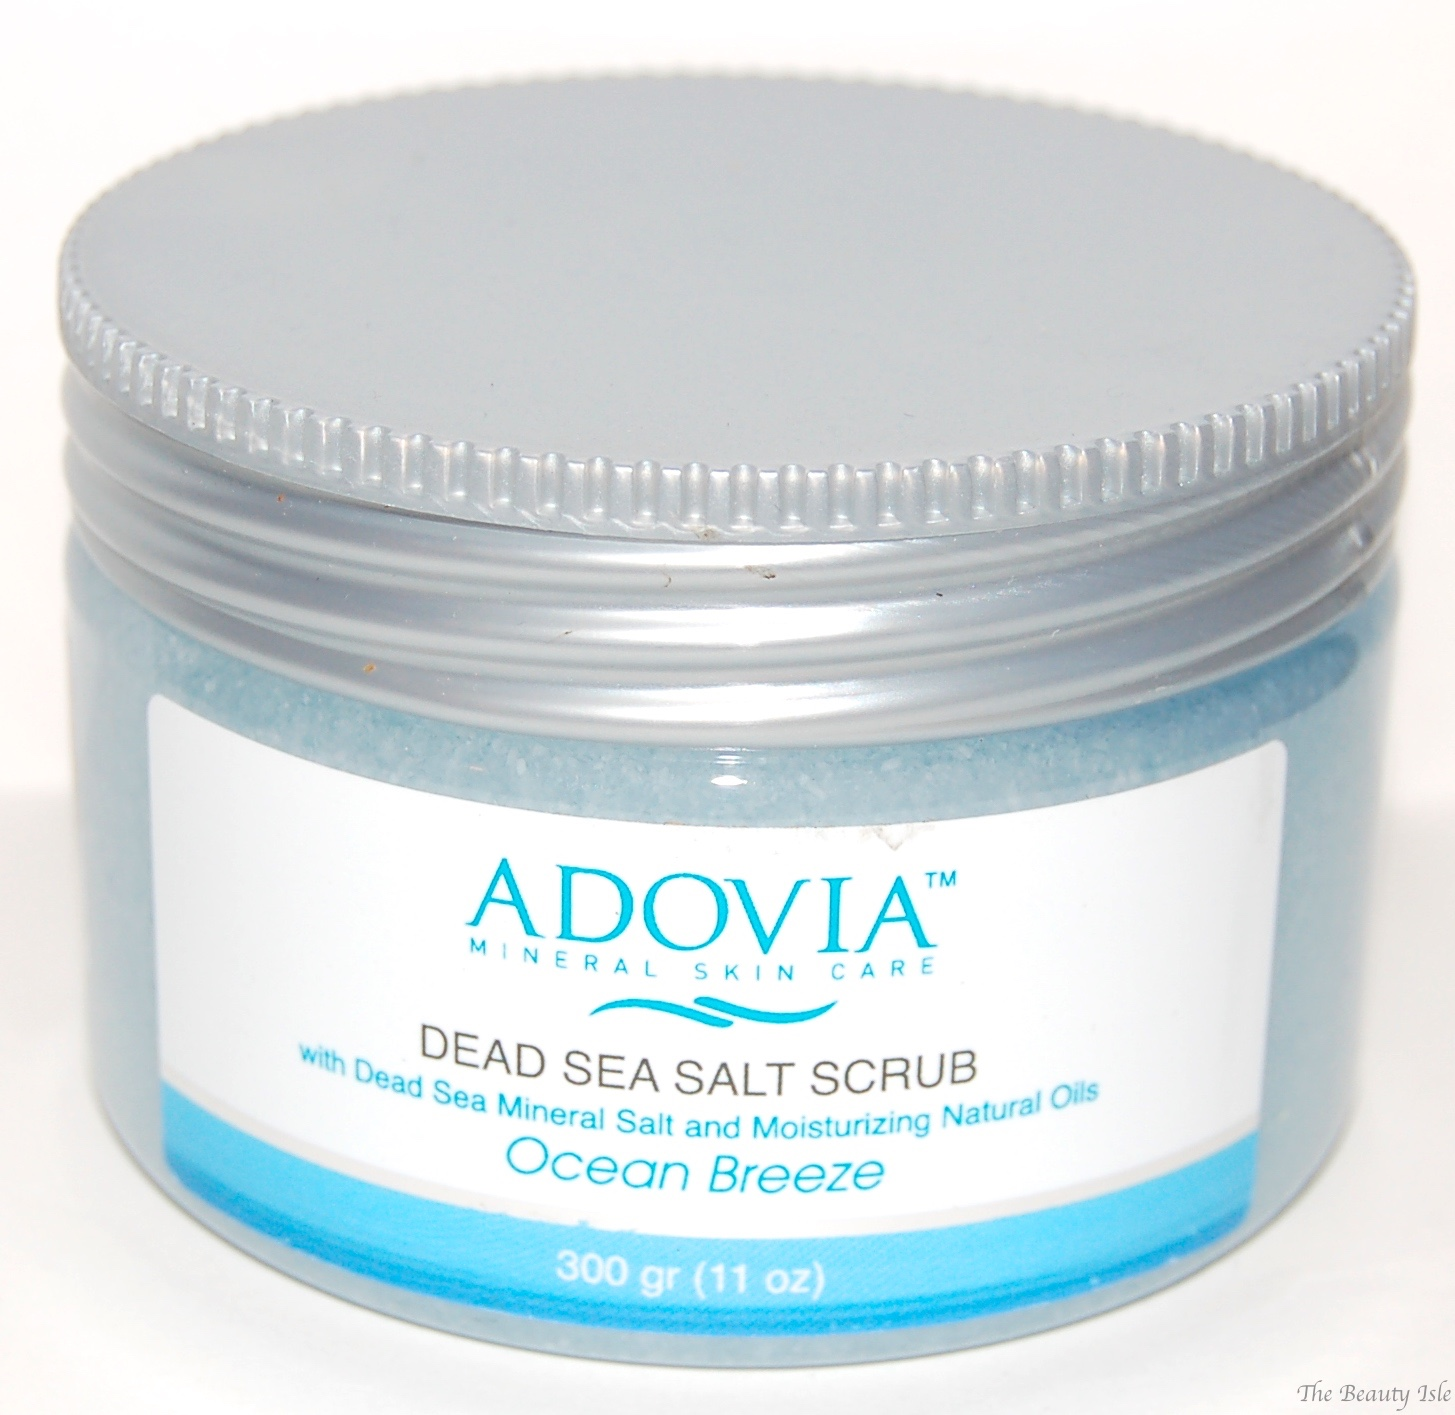 Dead salt sea scrub